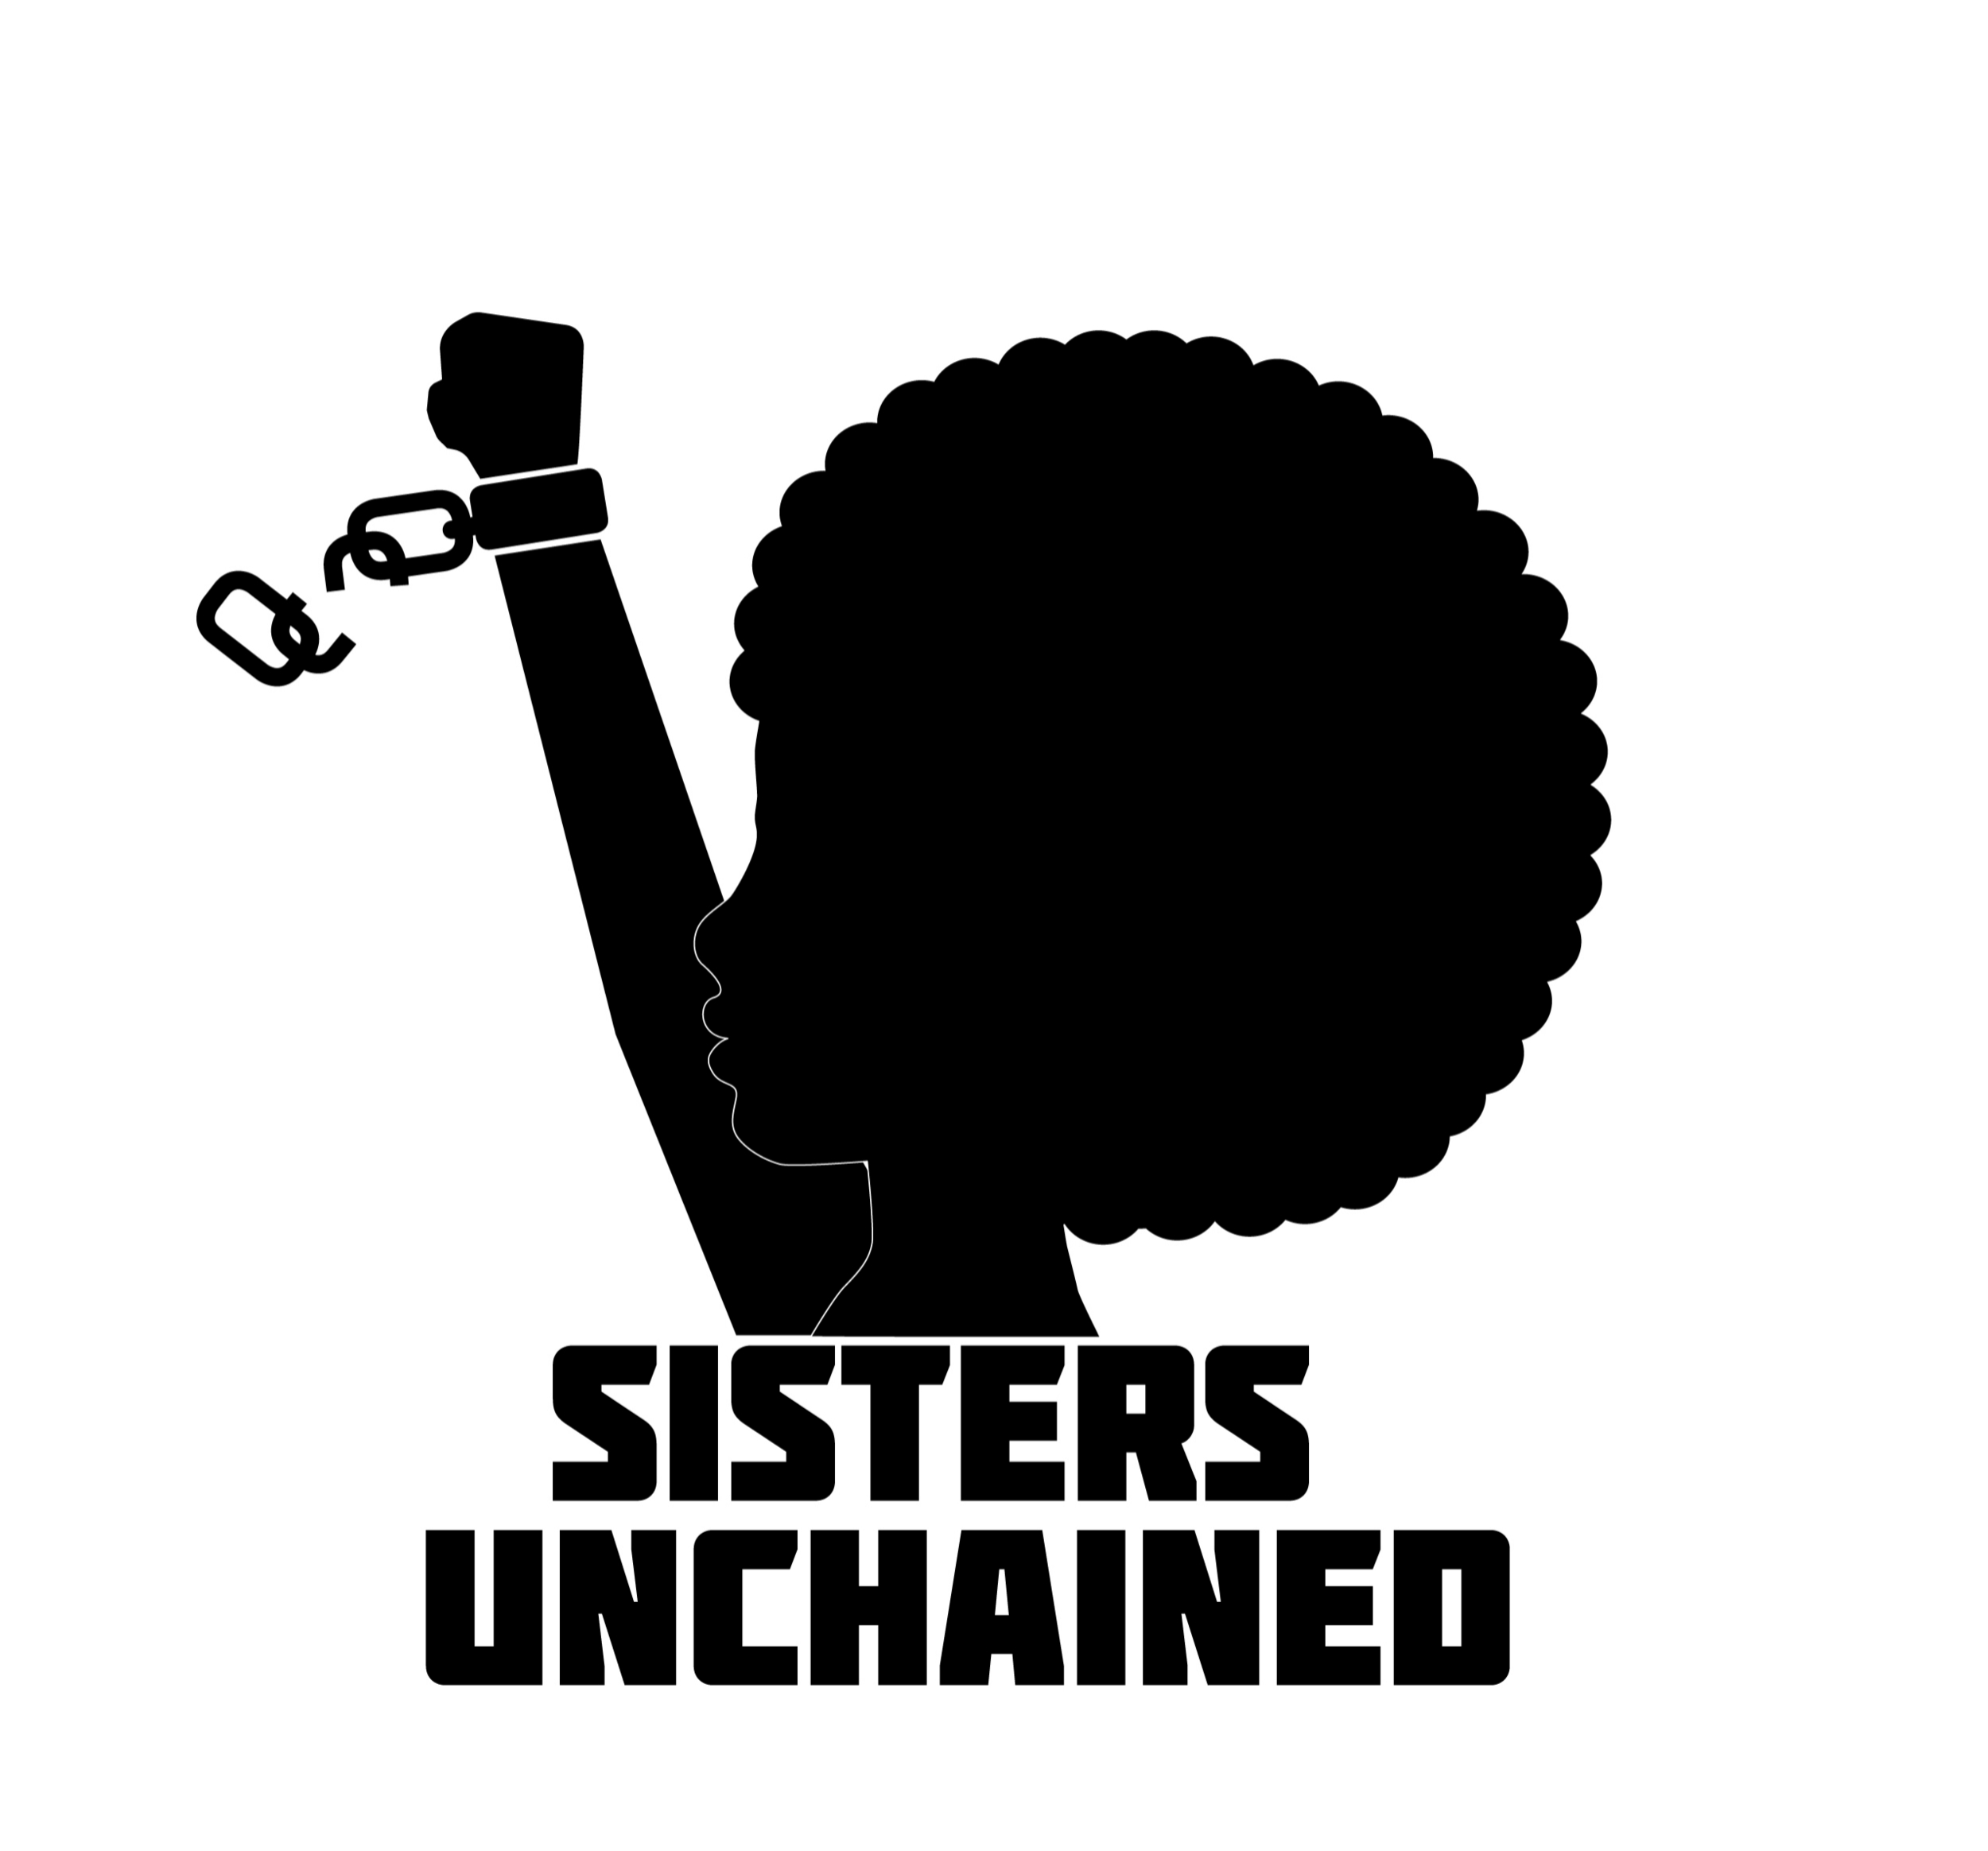 Sisters Unchained Facebook